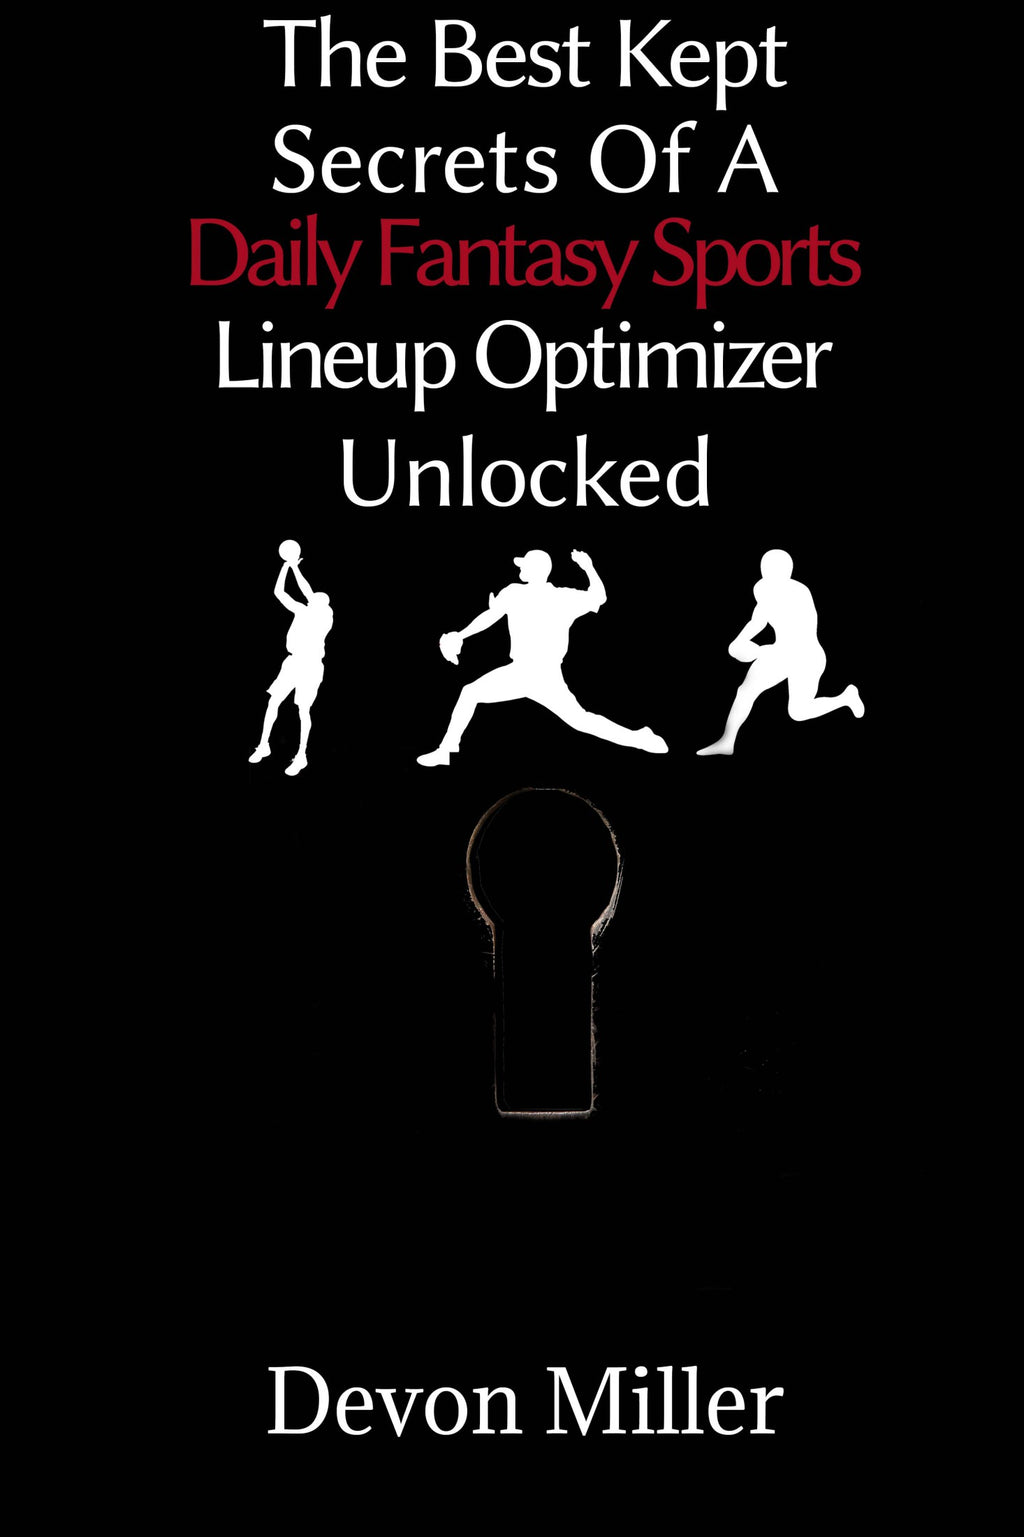 The Best Kept Secrets of A Daily Fantasy Sports Line Optimizer Unlocked